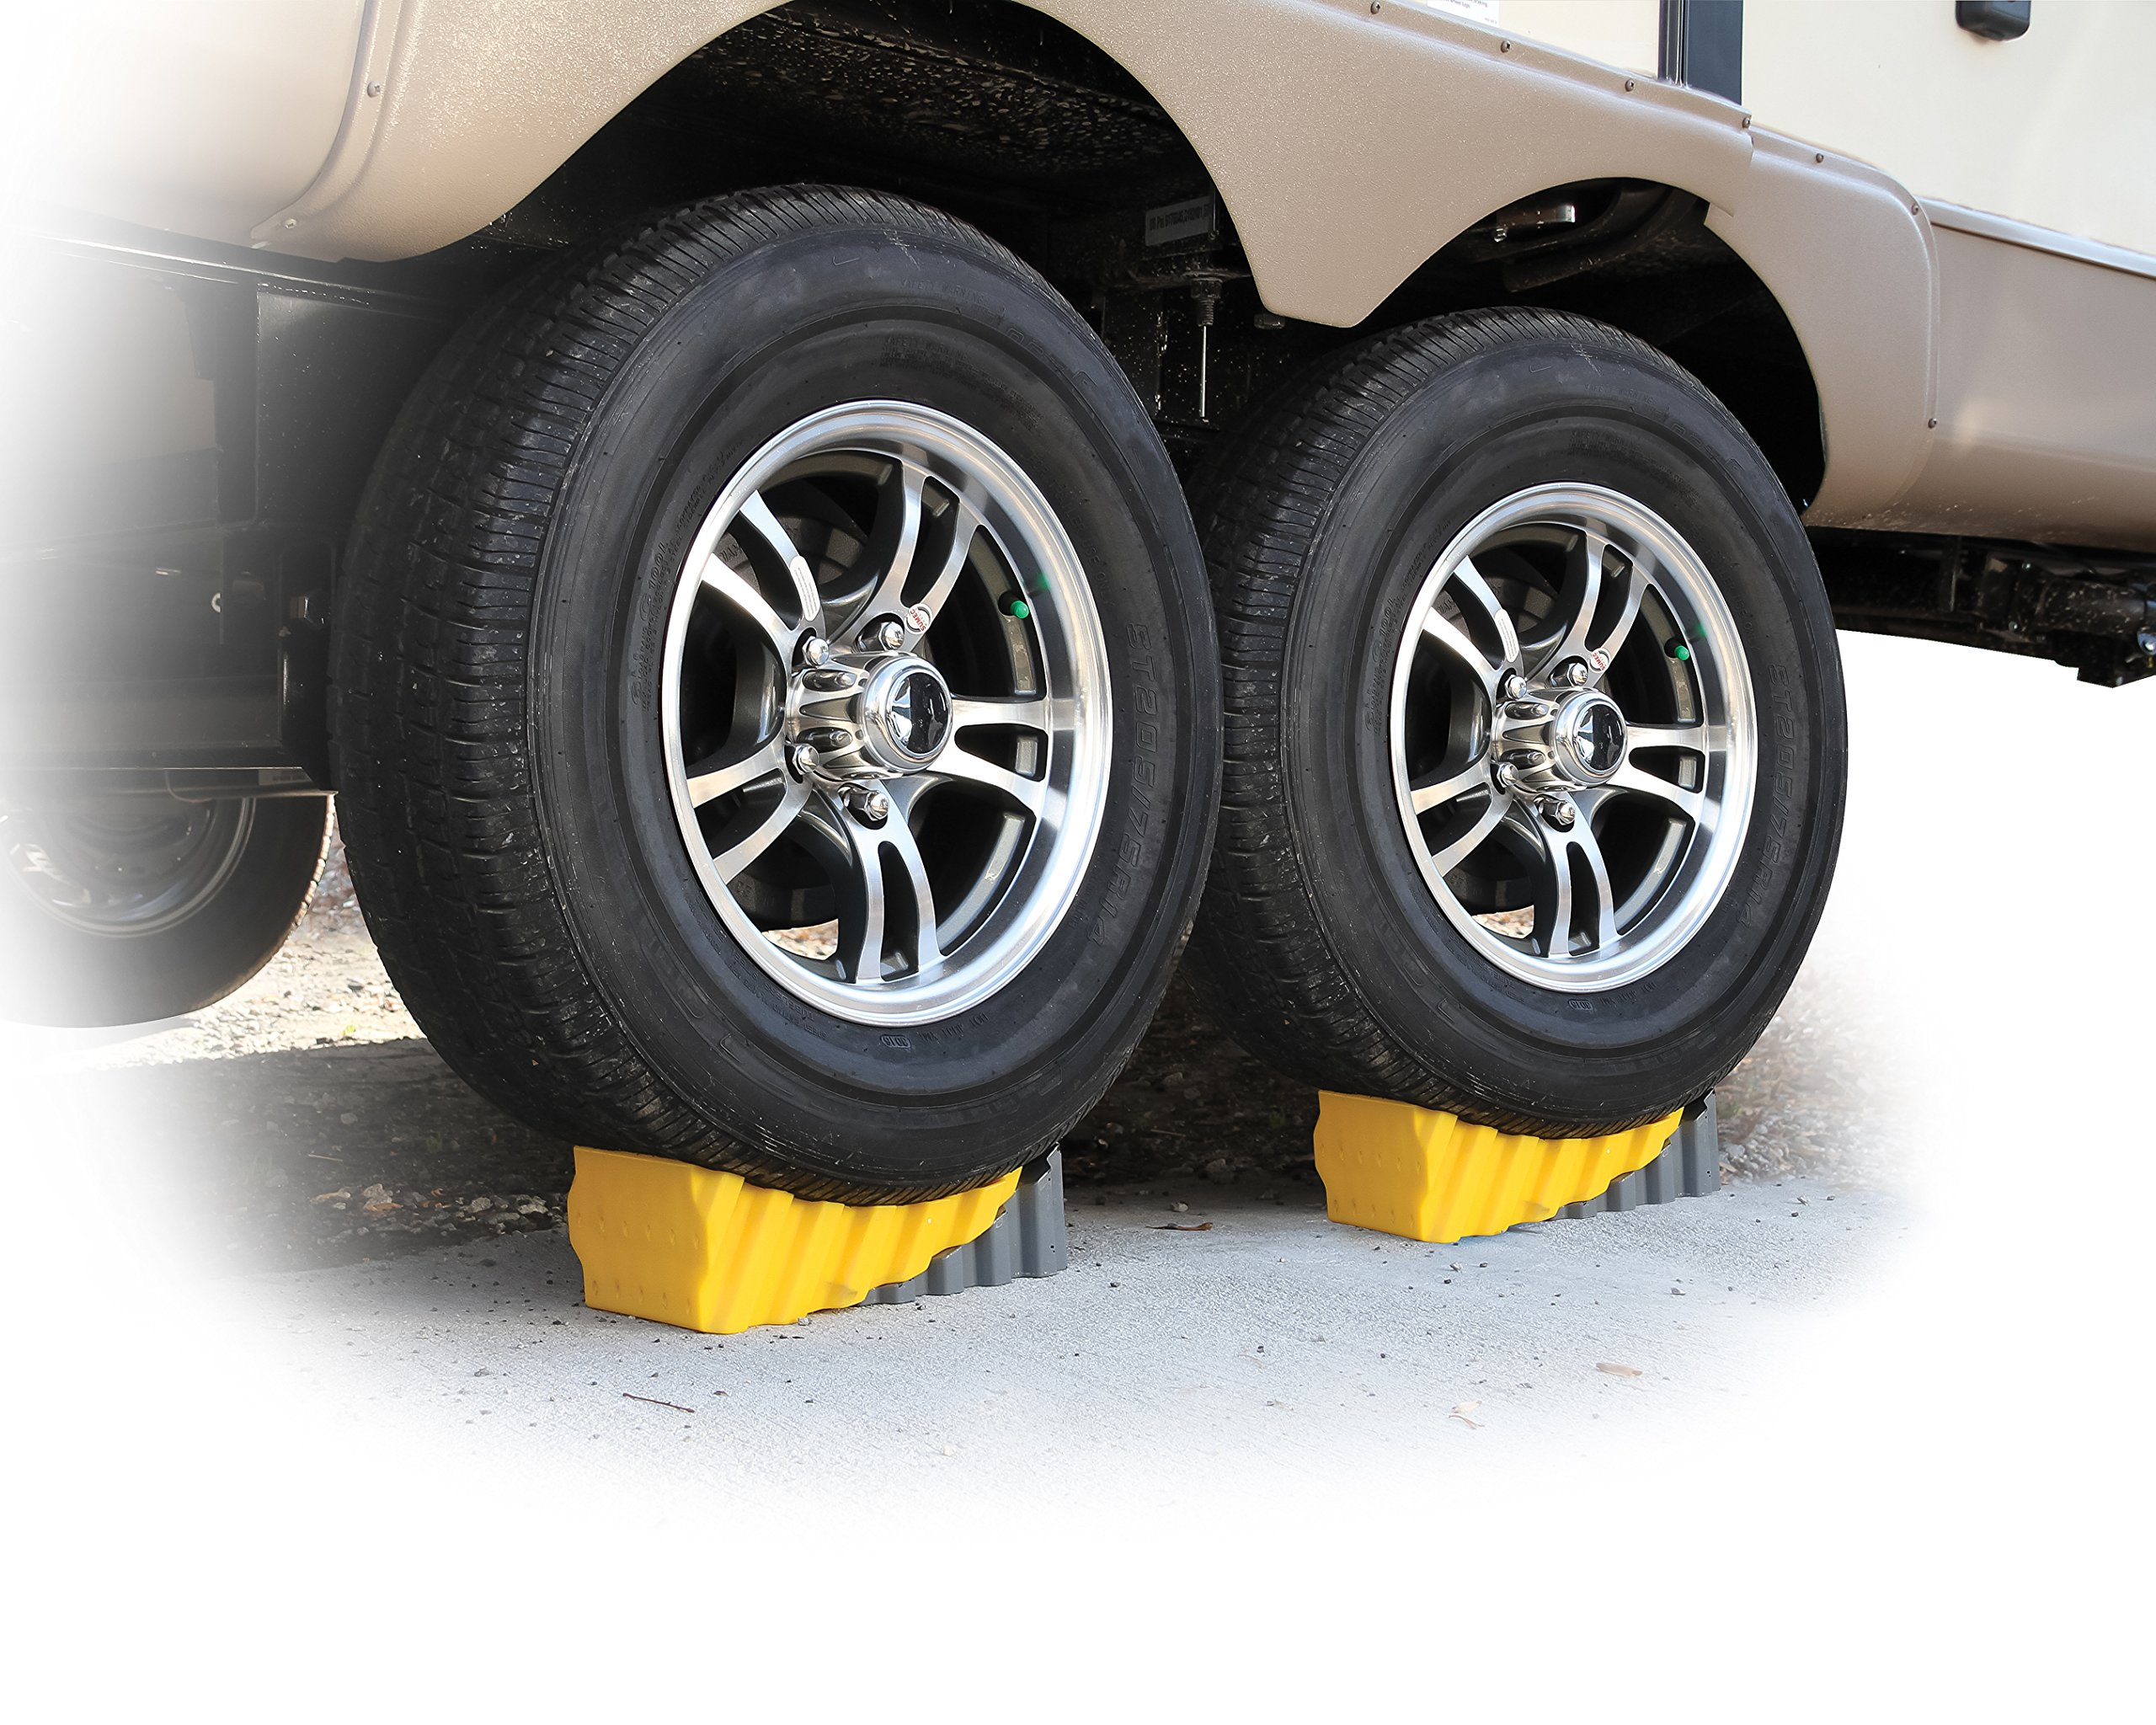 Camco RV Curved Leveler with Chock - 2 Pack - Easy Drive-on Leveler Adds Up to 4'' in Height (44425) by Camco (Image #2)